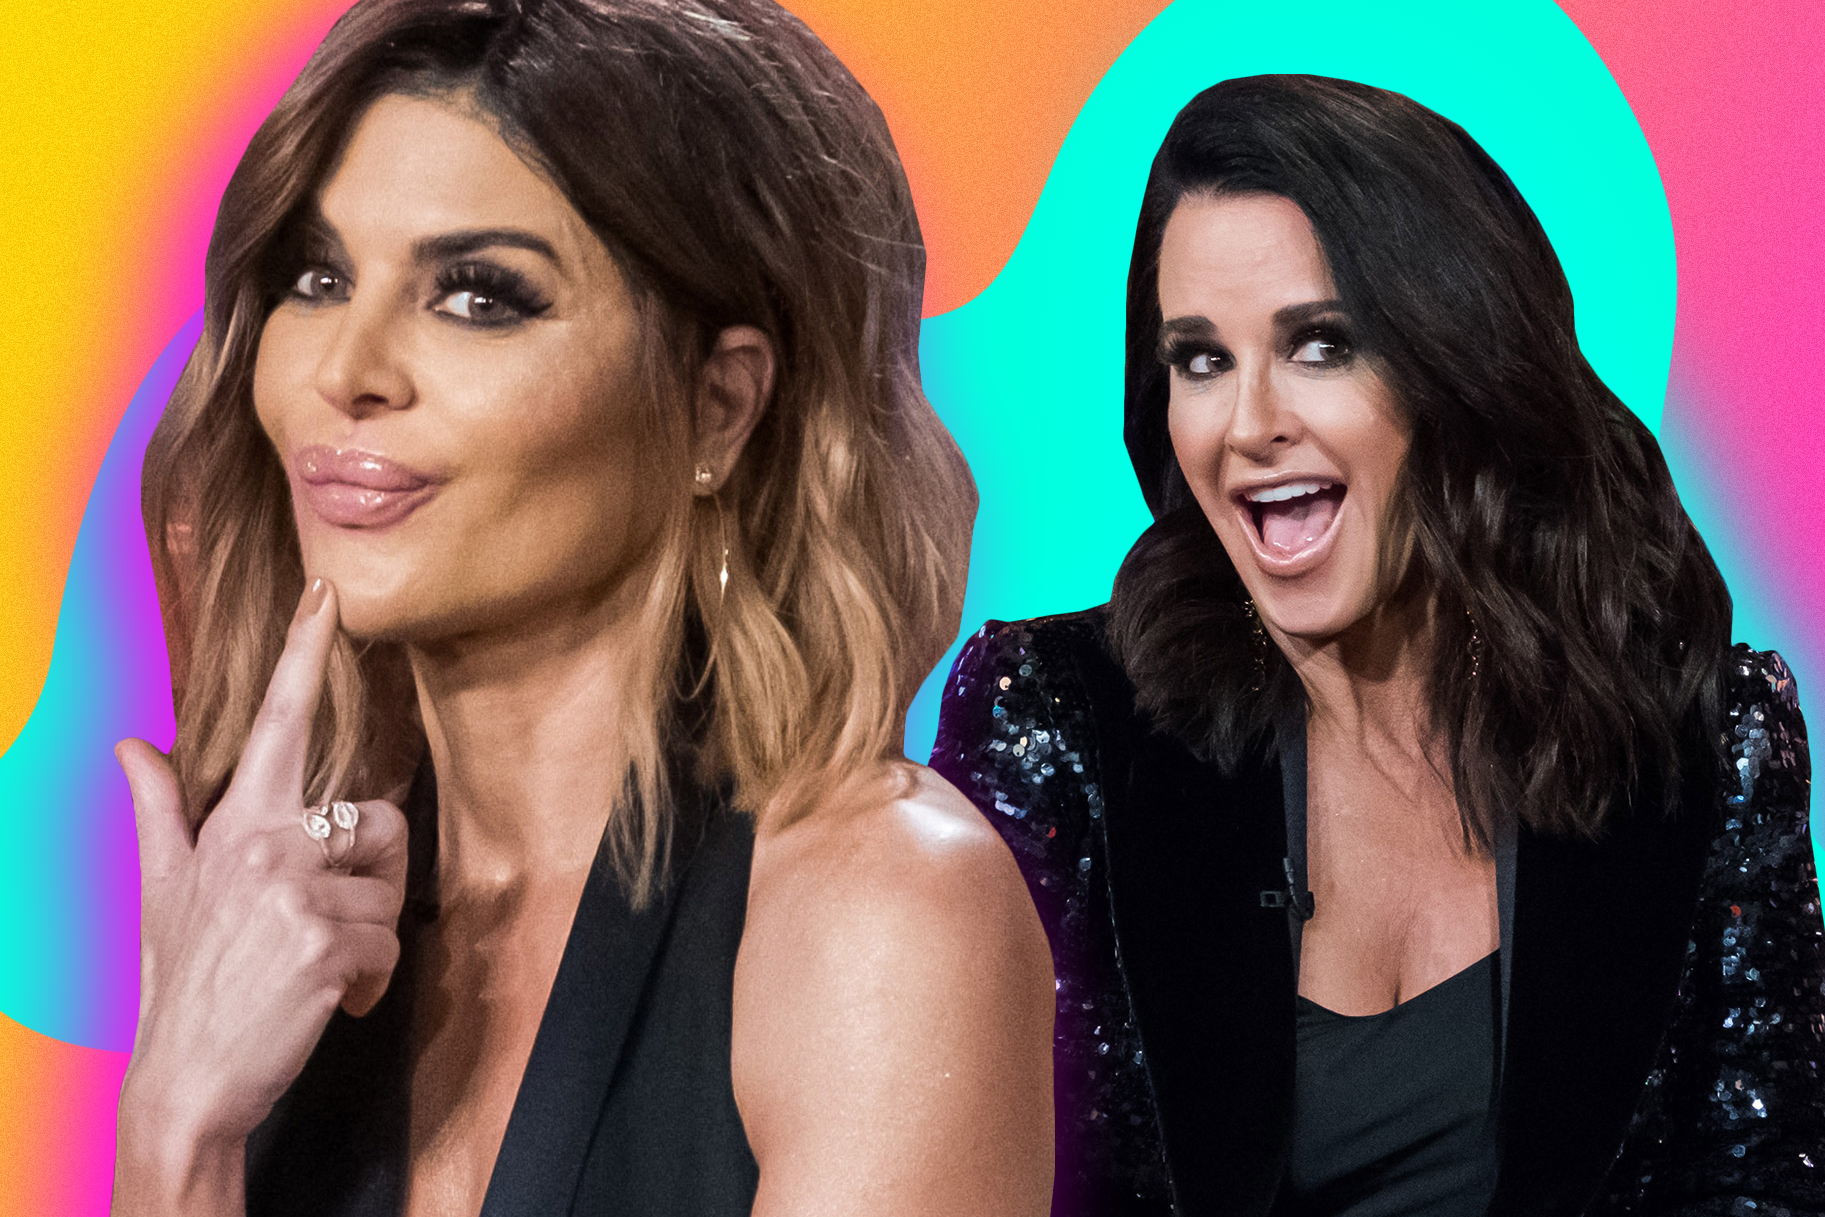 Lisa Rinna and Kyle Richards